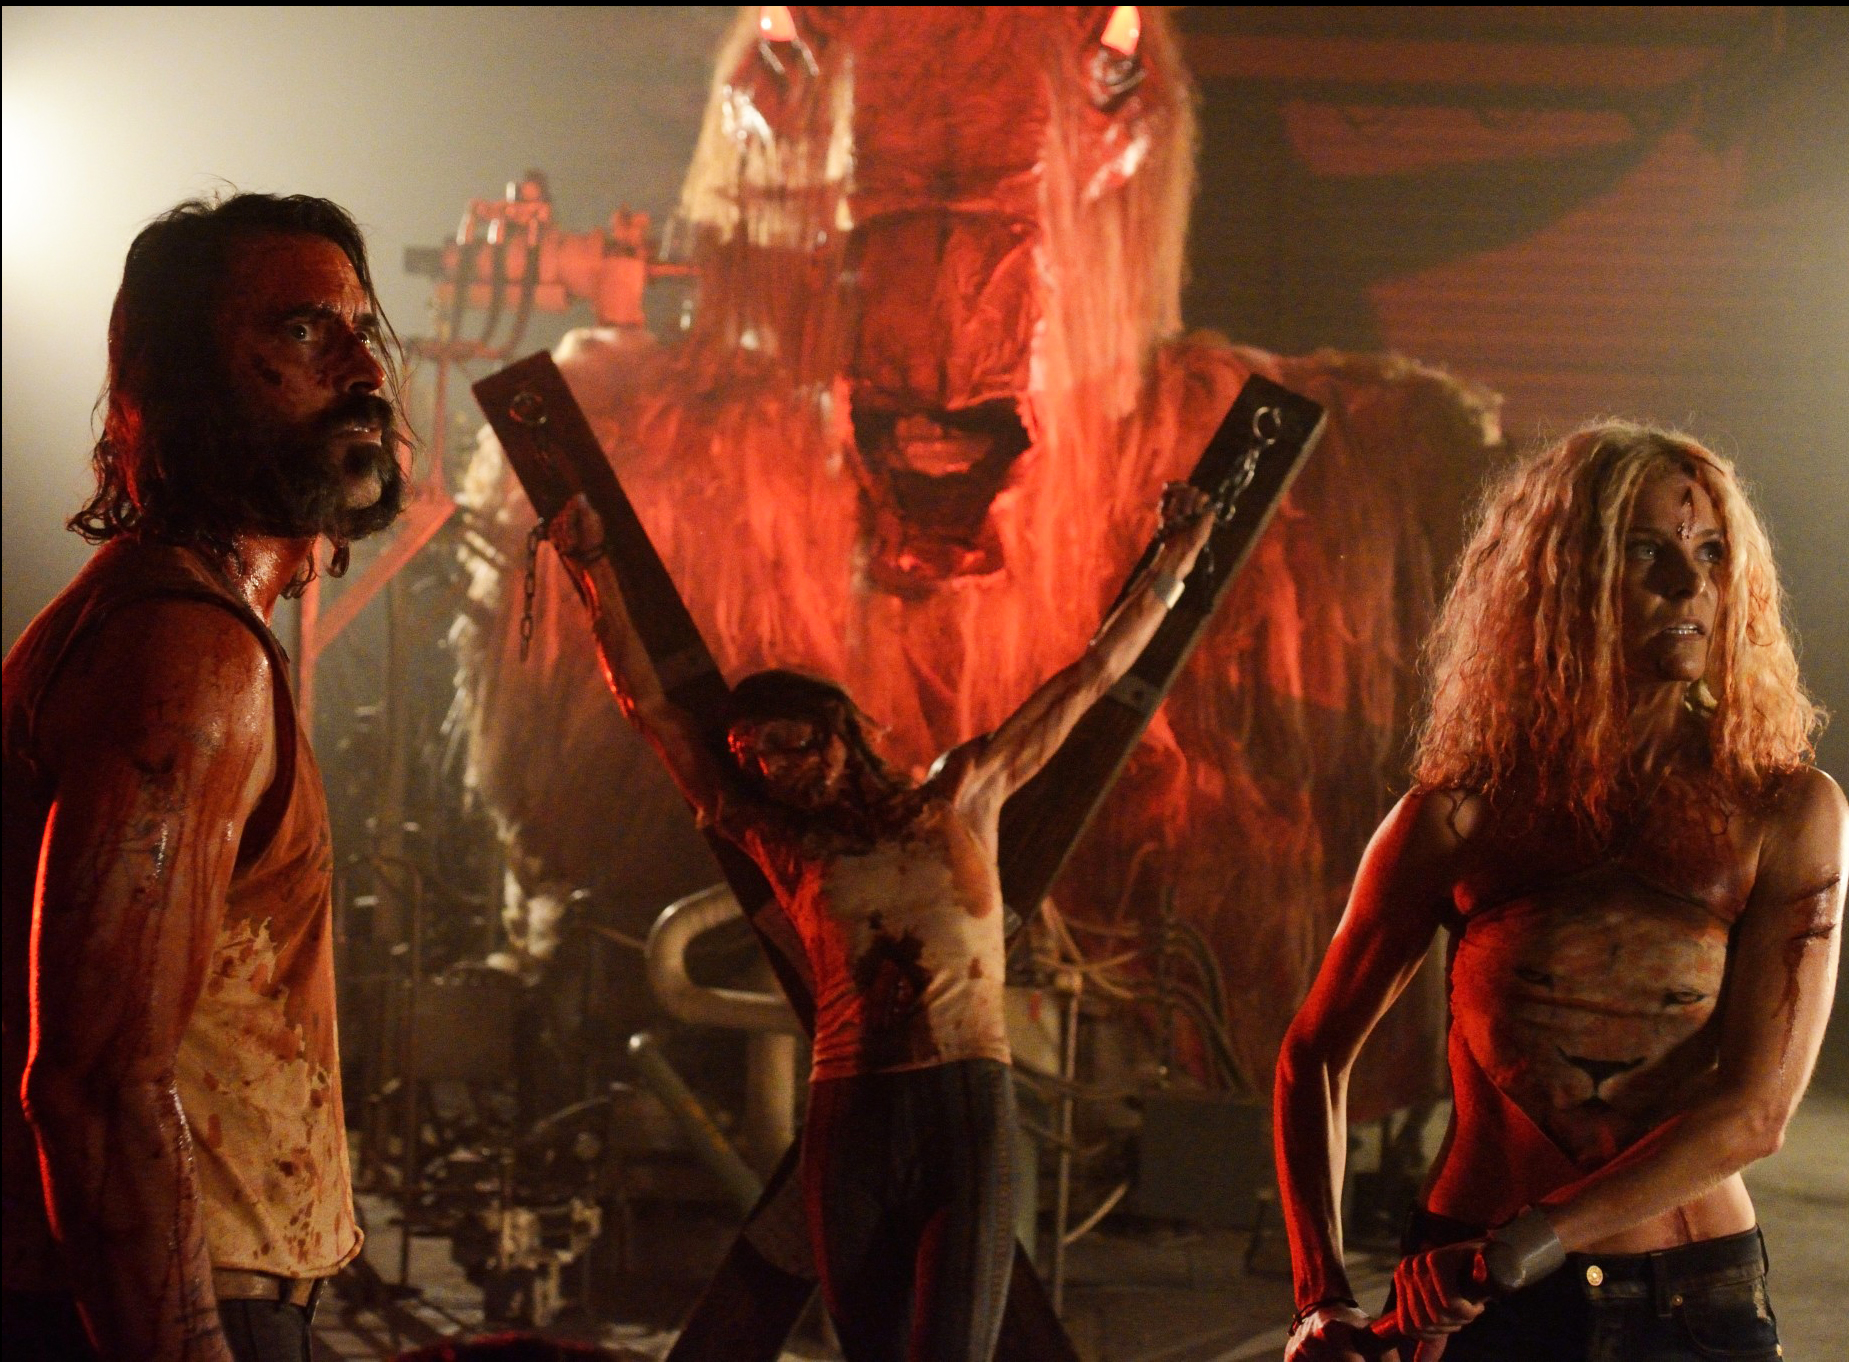 Rob Zombie's 31 with Meg Foster and Sheri Moon Zombie.